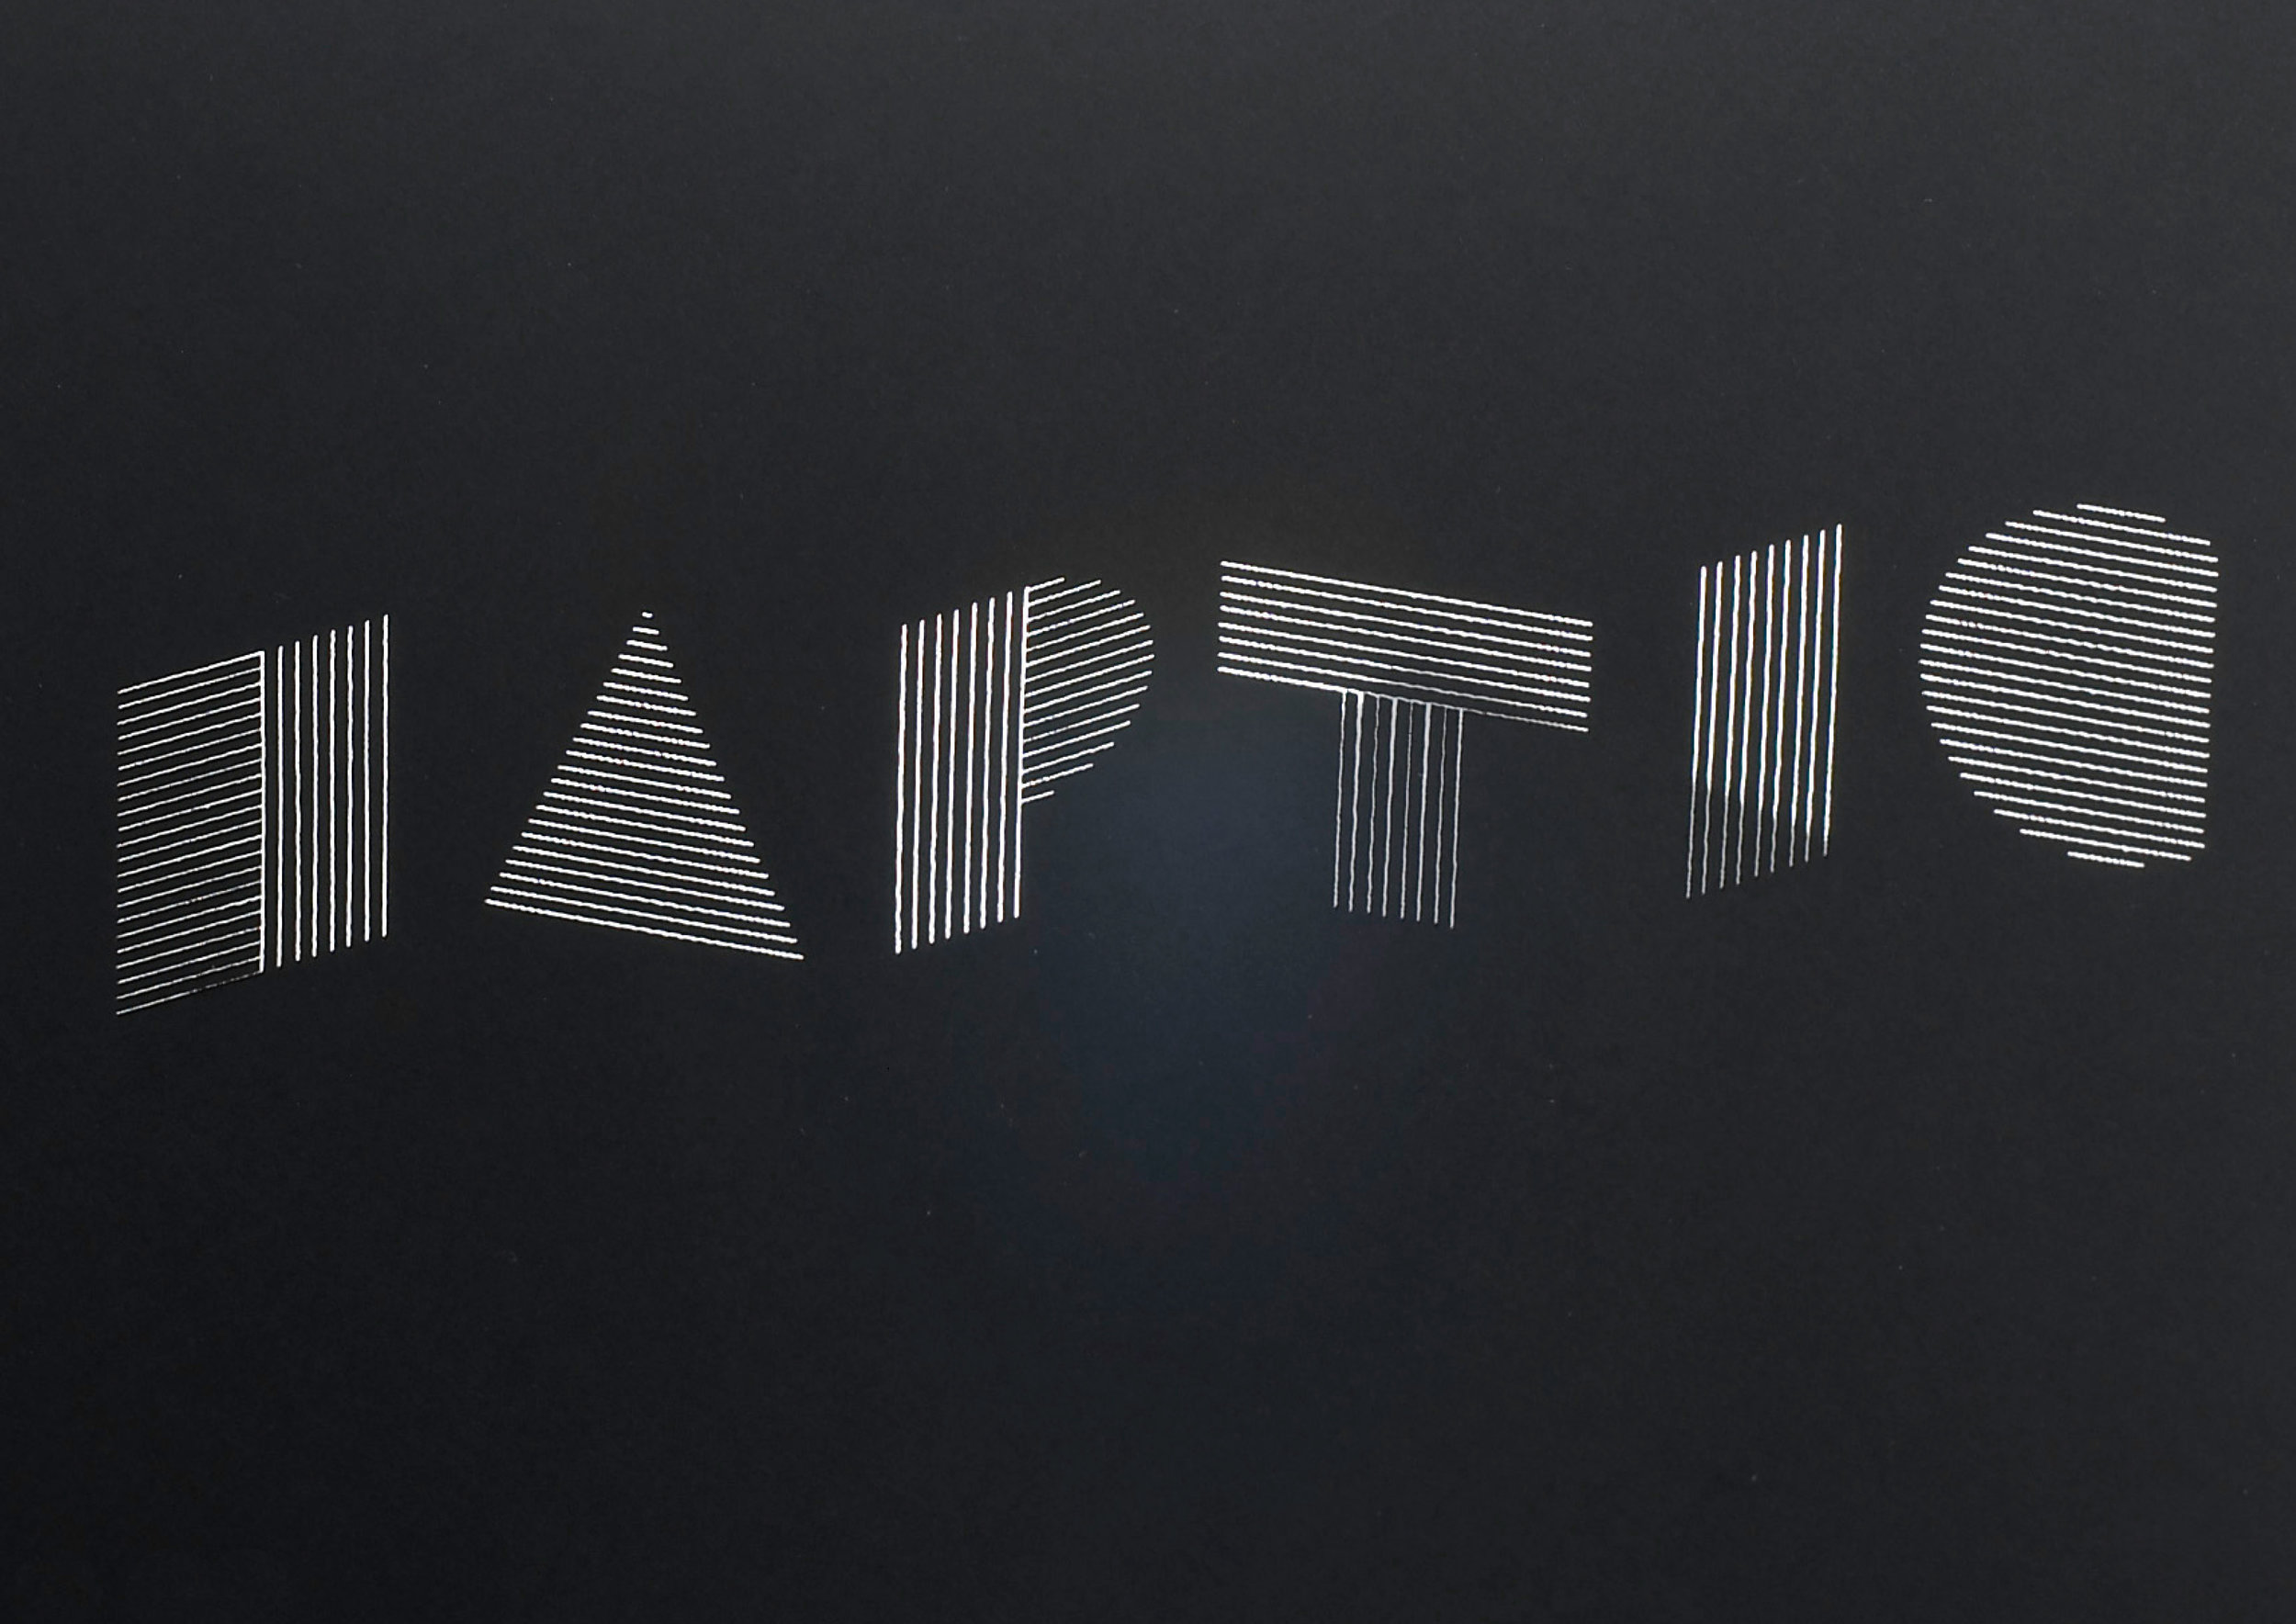 Haptic - Visual identity for a London based architectural practice that specialises in 'haptical' or tactile architecture.